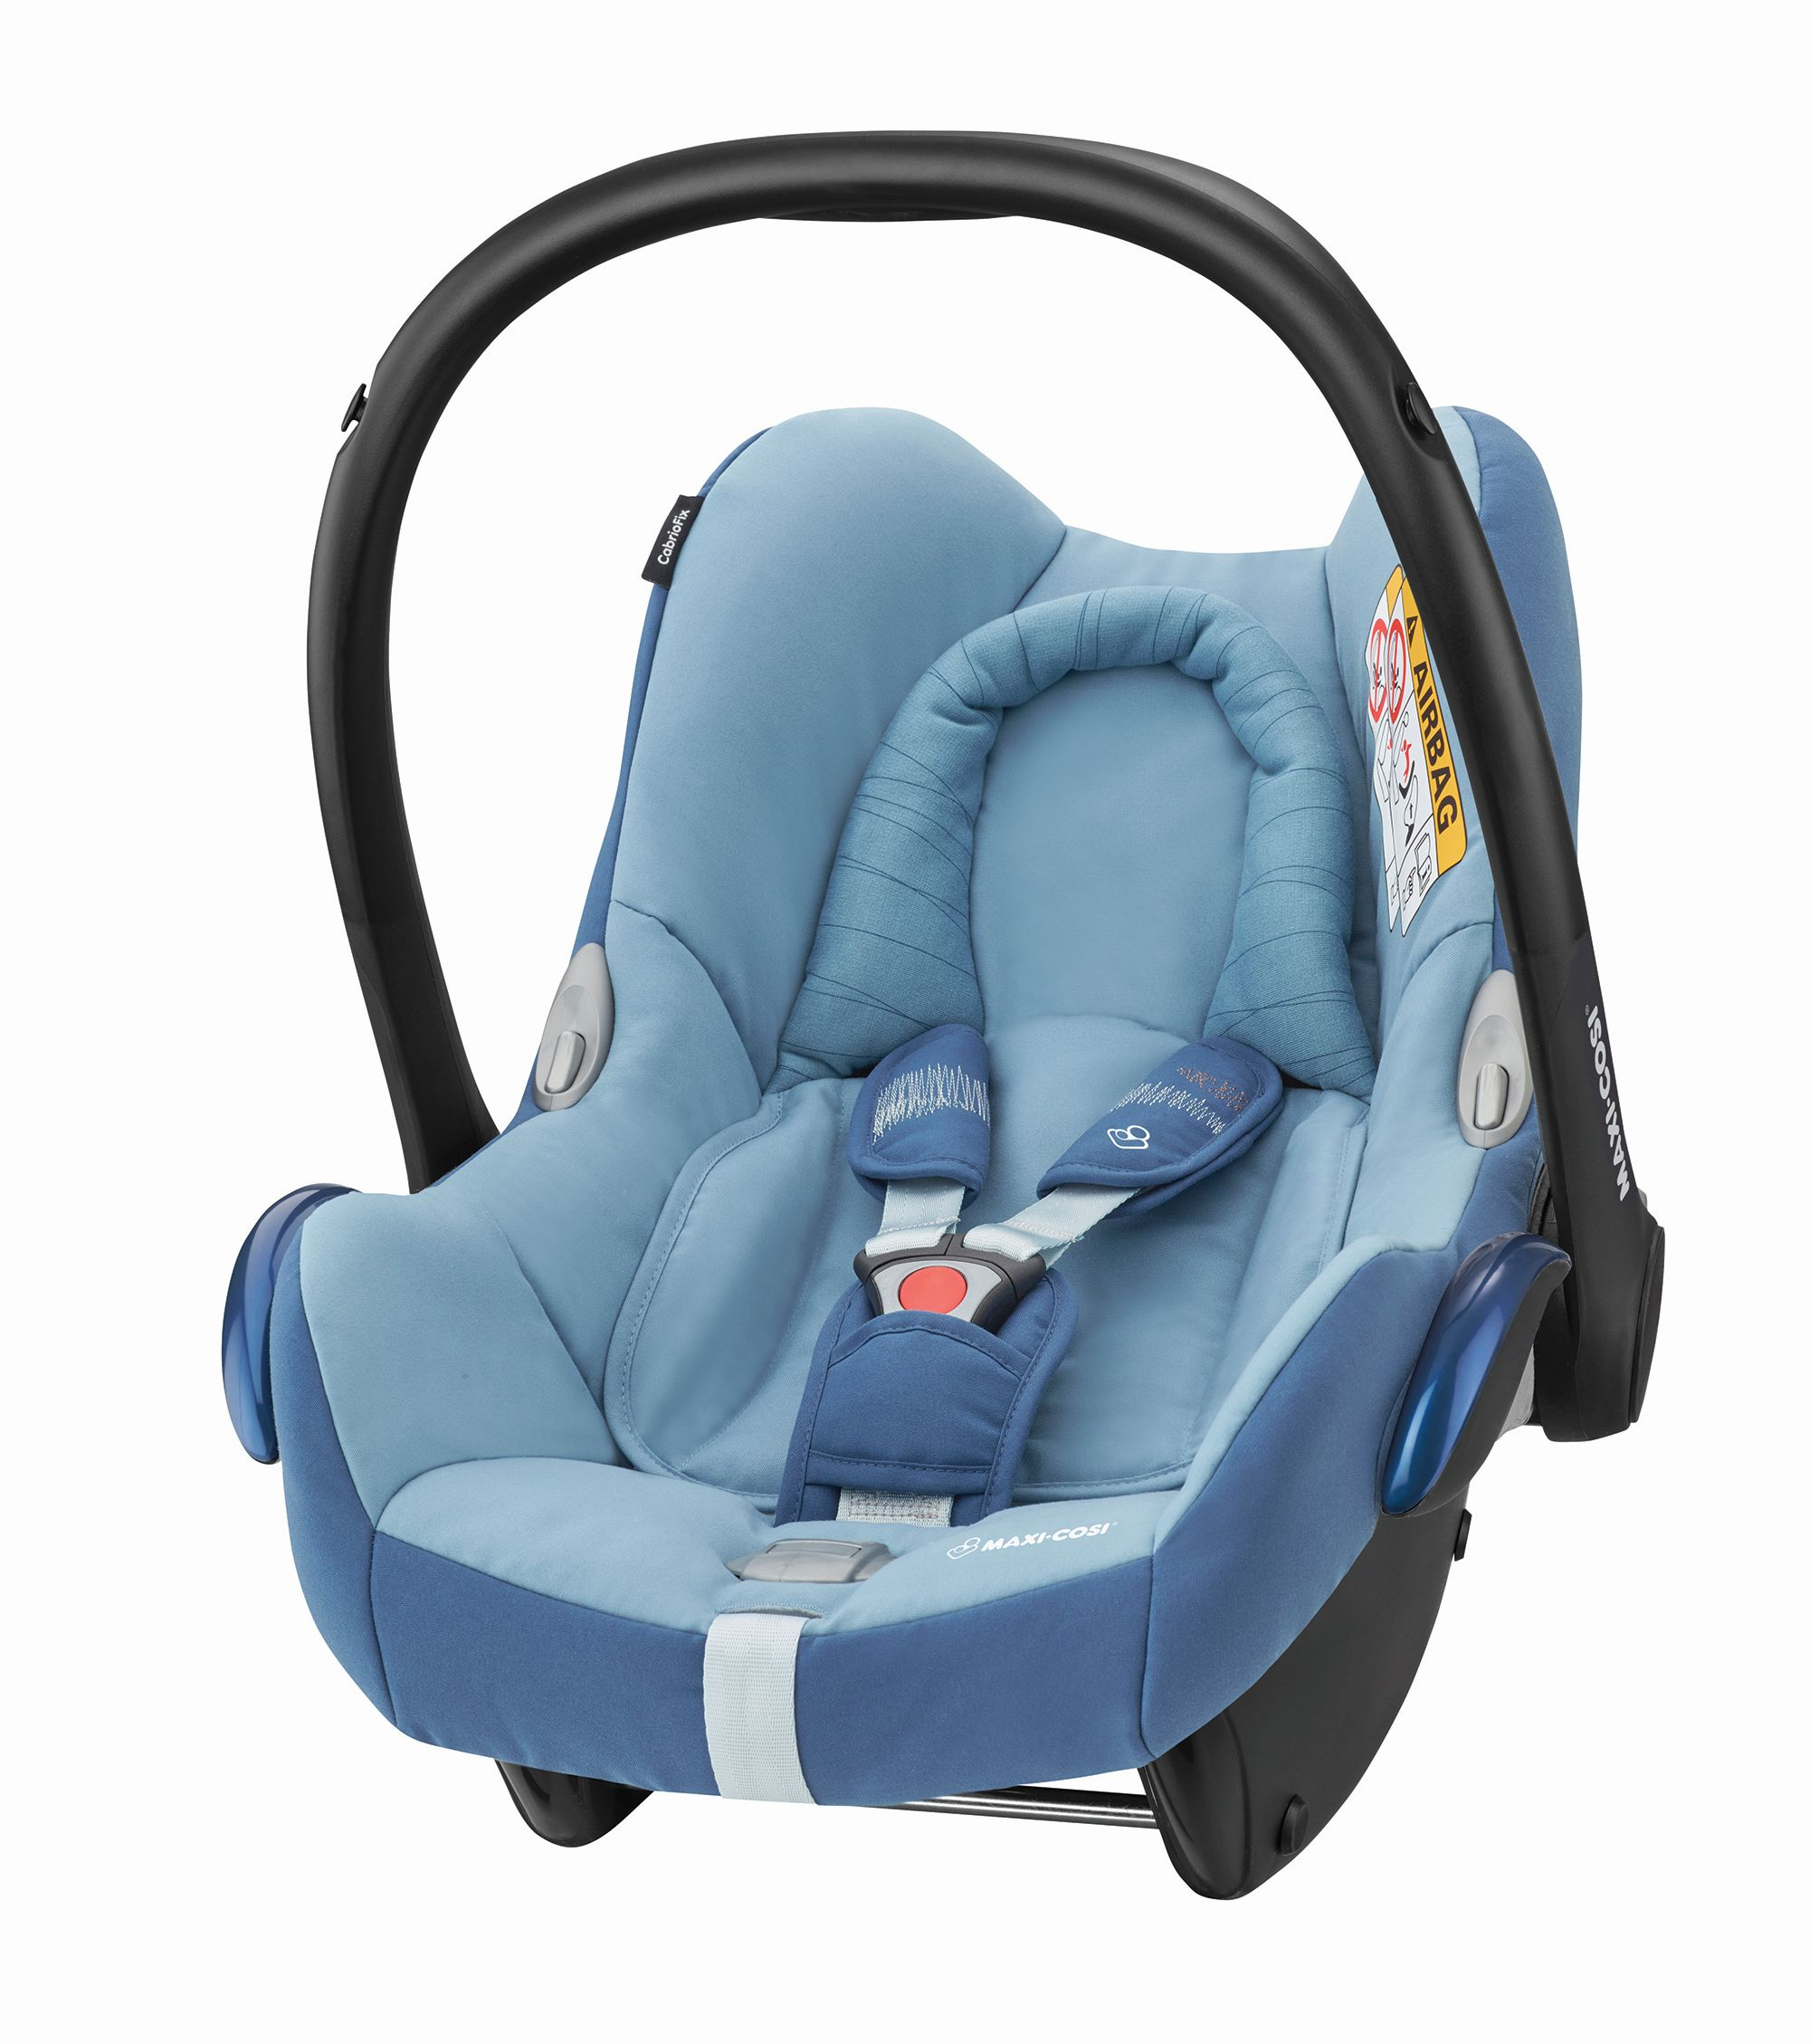 What Is Cabriofix Car Seat